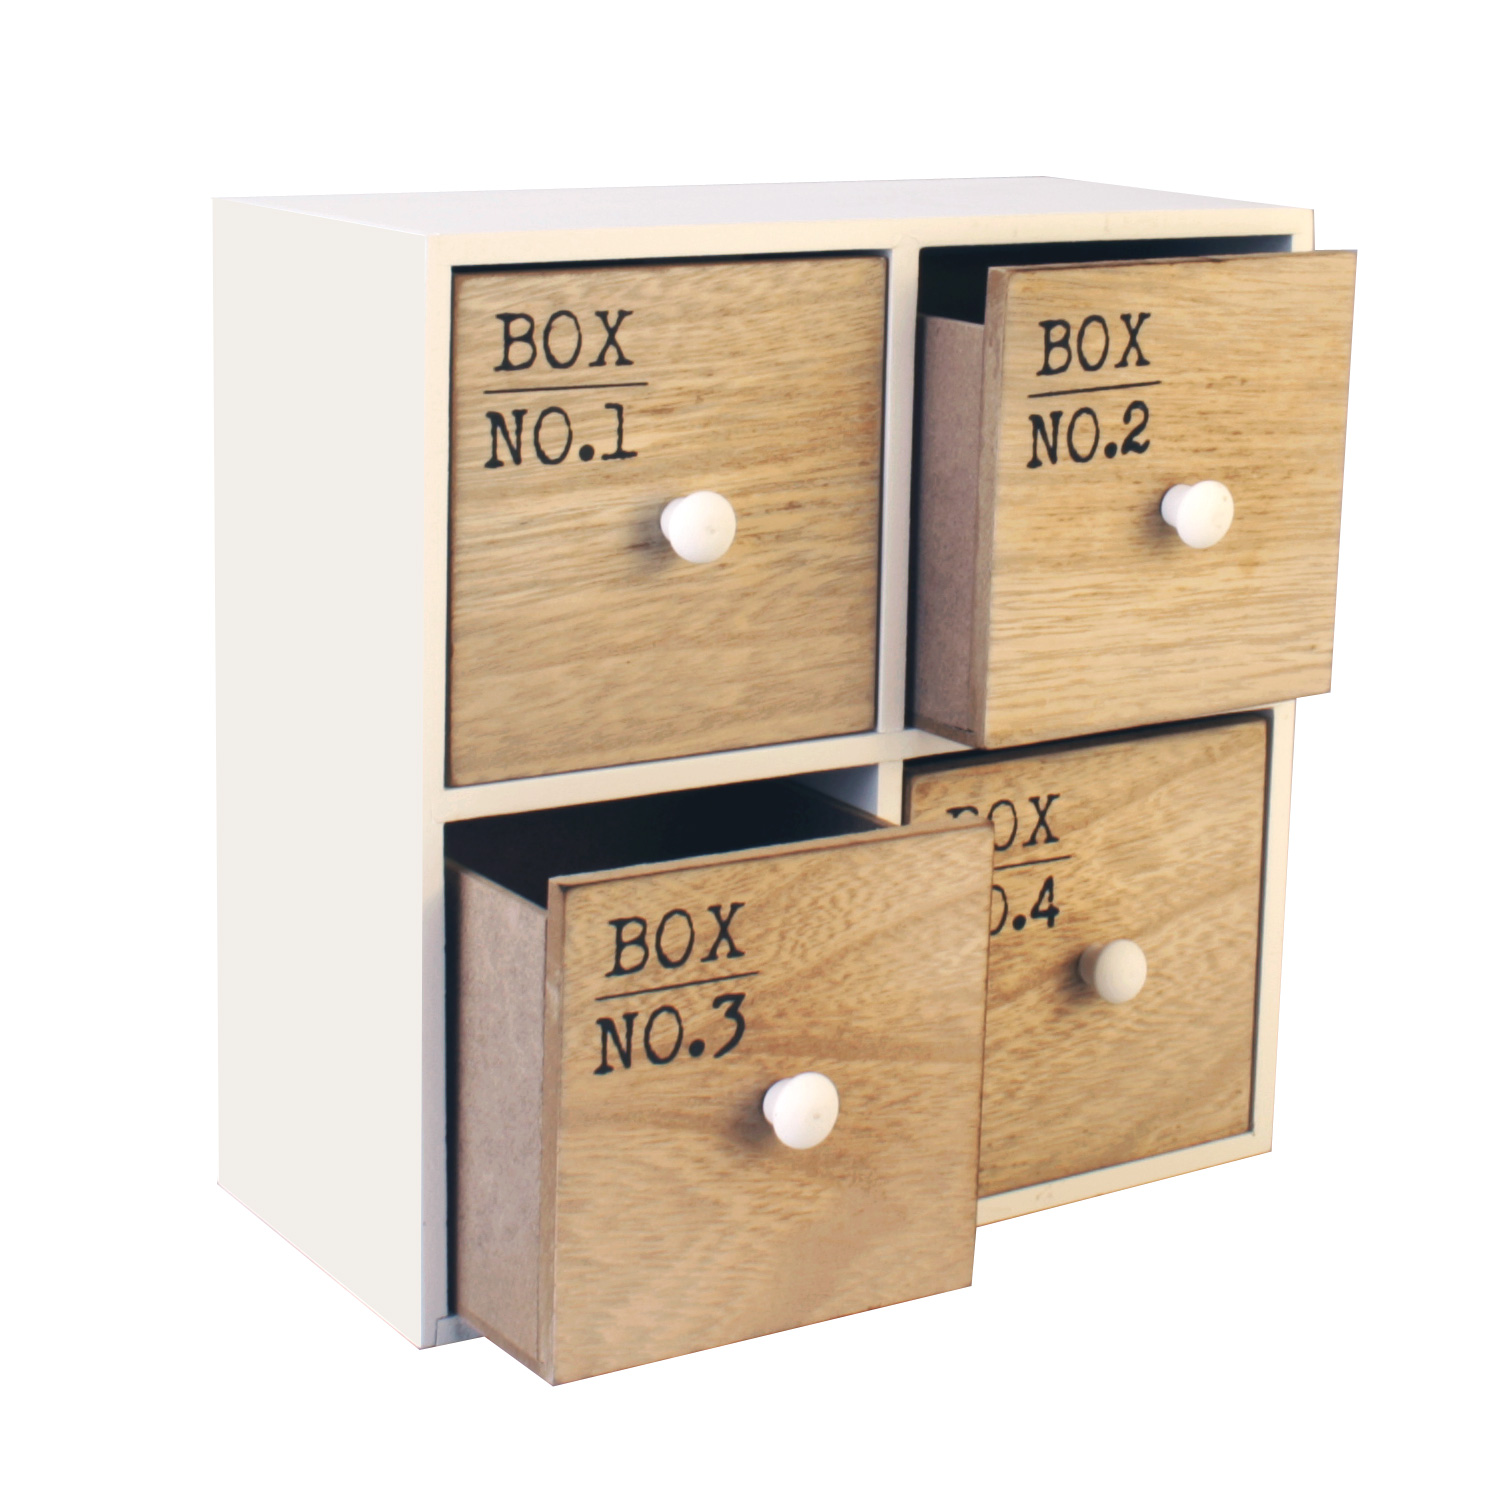 box schubladenbox schubladen holzbox sortierbox schmuckschatulle krimskrams ebay. Black Bedroom Furniture Sets. Home Design Ideas